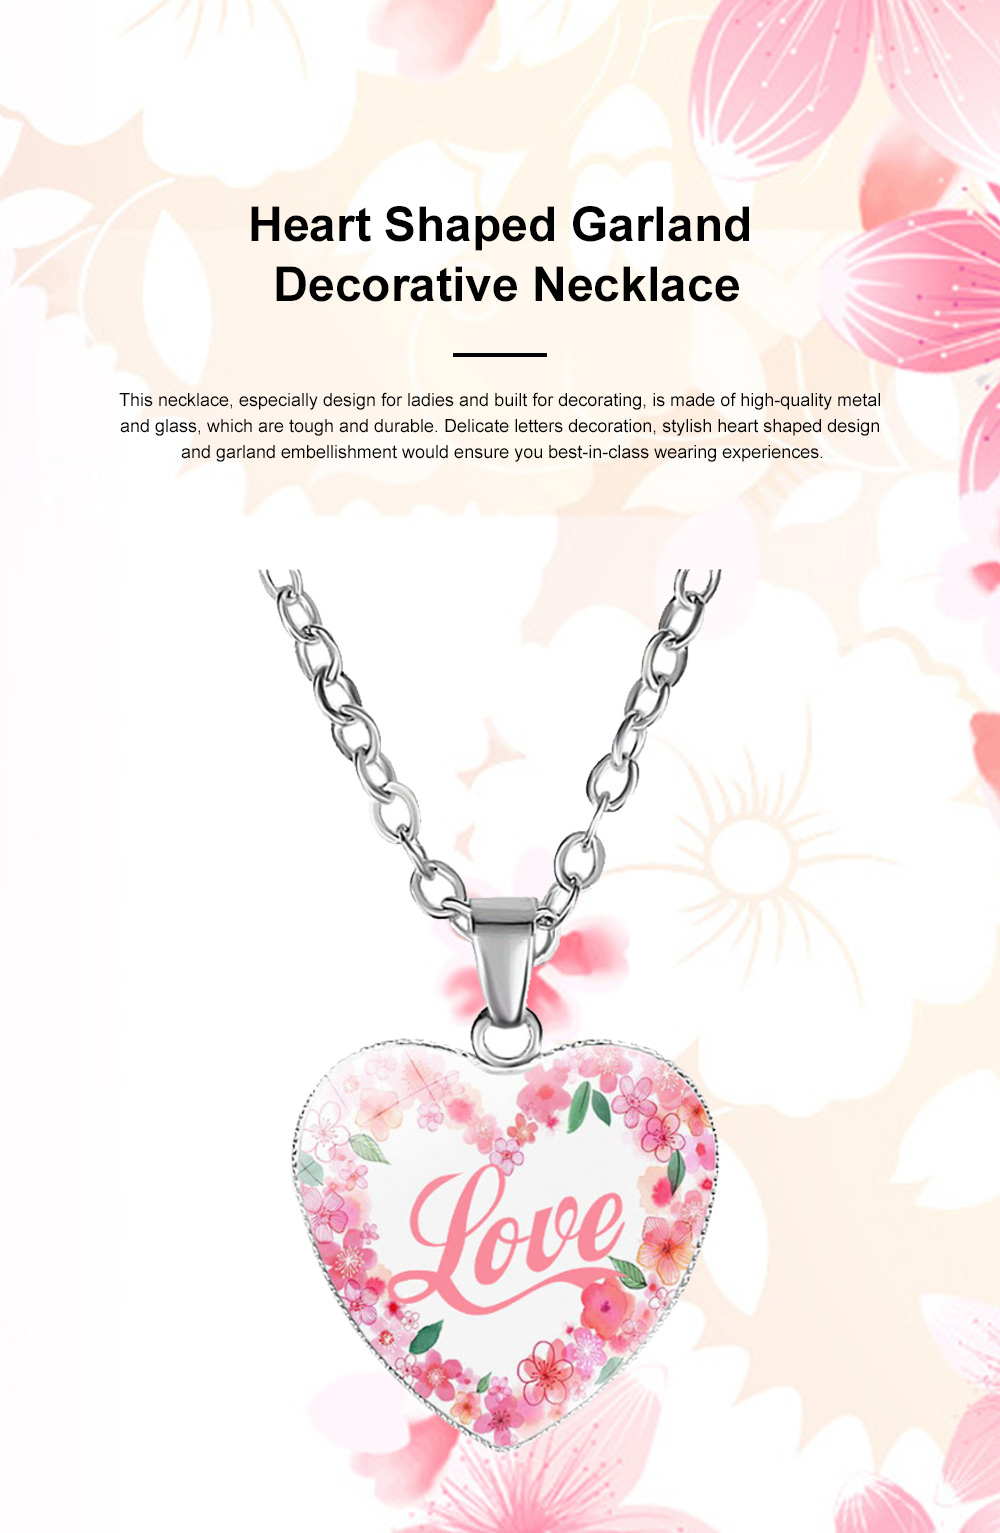 Elegant Fancy Hope Faith Dream Letters Decoration Necklace, Stylish Heart Shaped Roses Garland Ornamented Necklace for Ladies 0